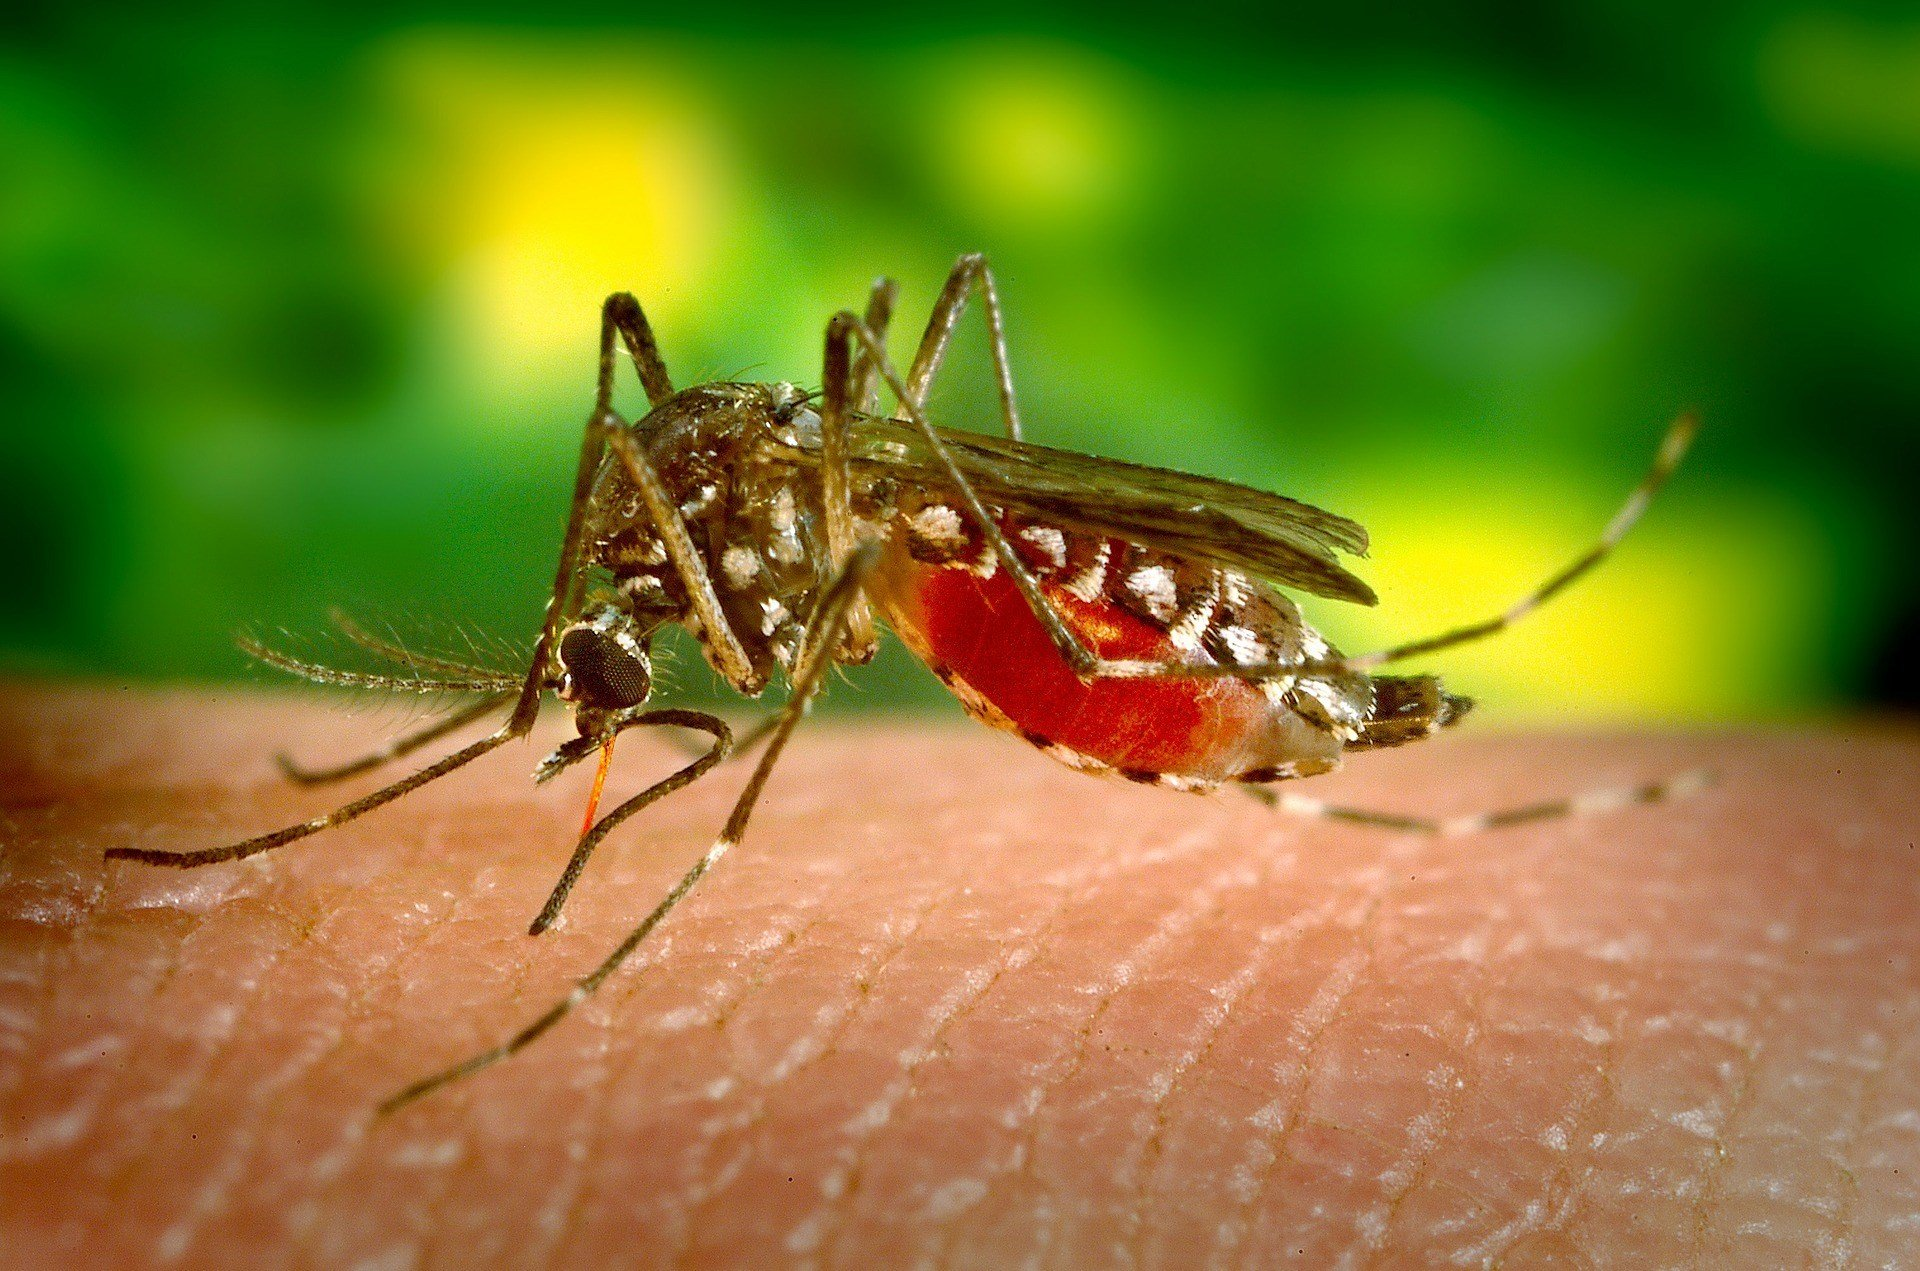 Bay County Health Reports Second Human Case Of West Nile Virus